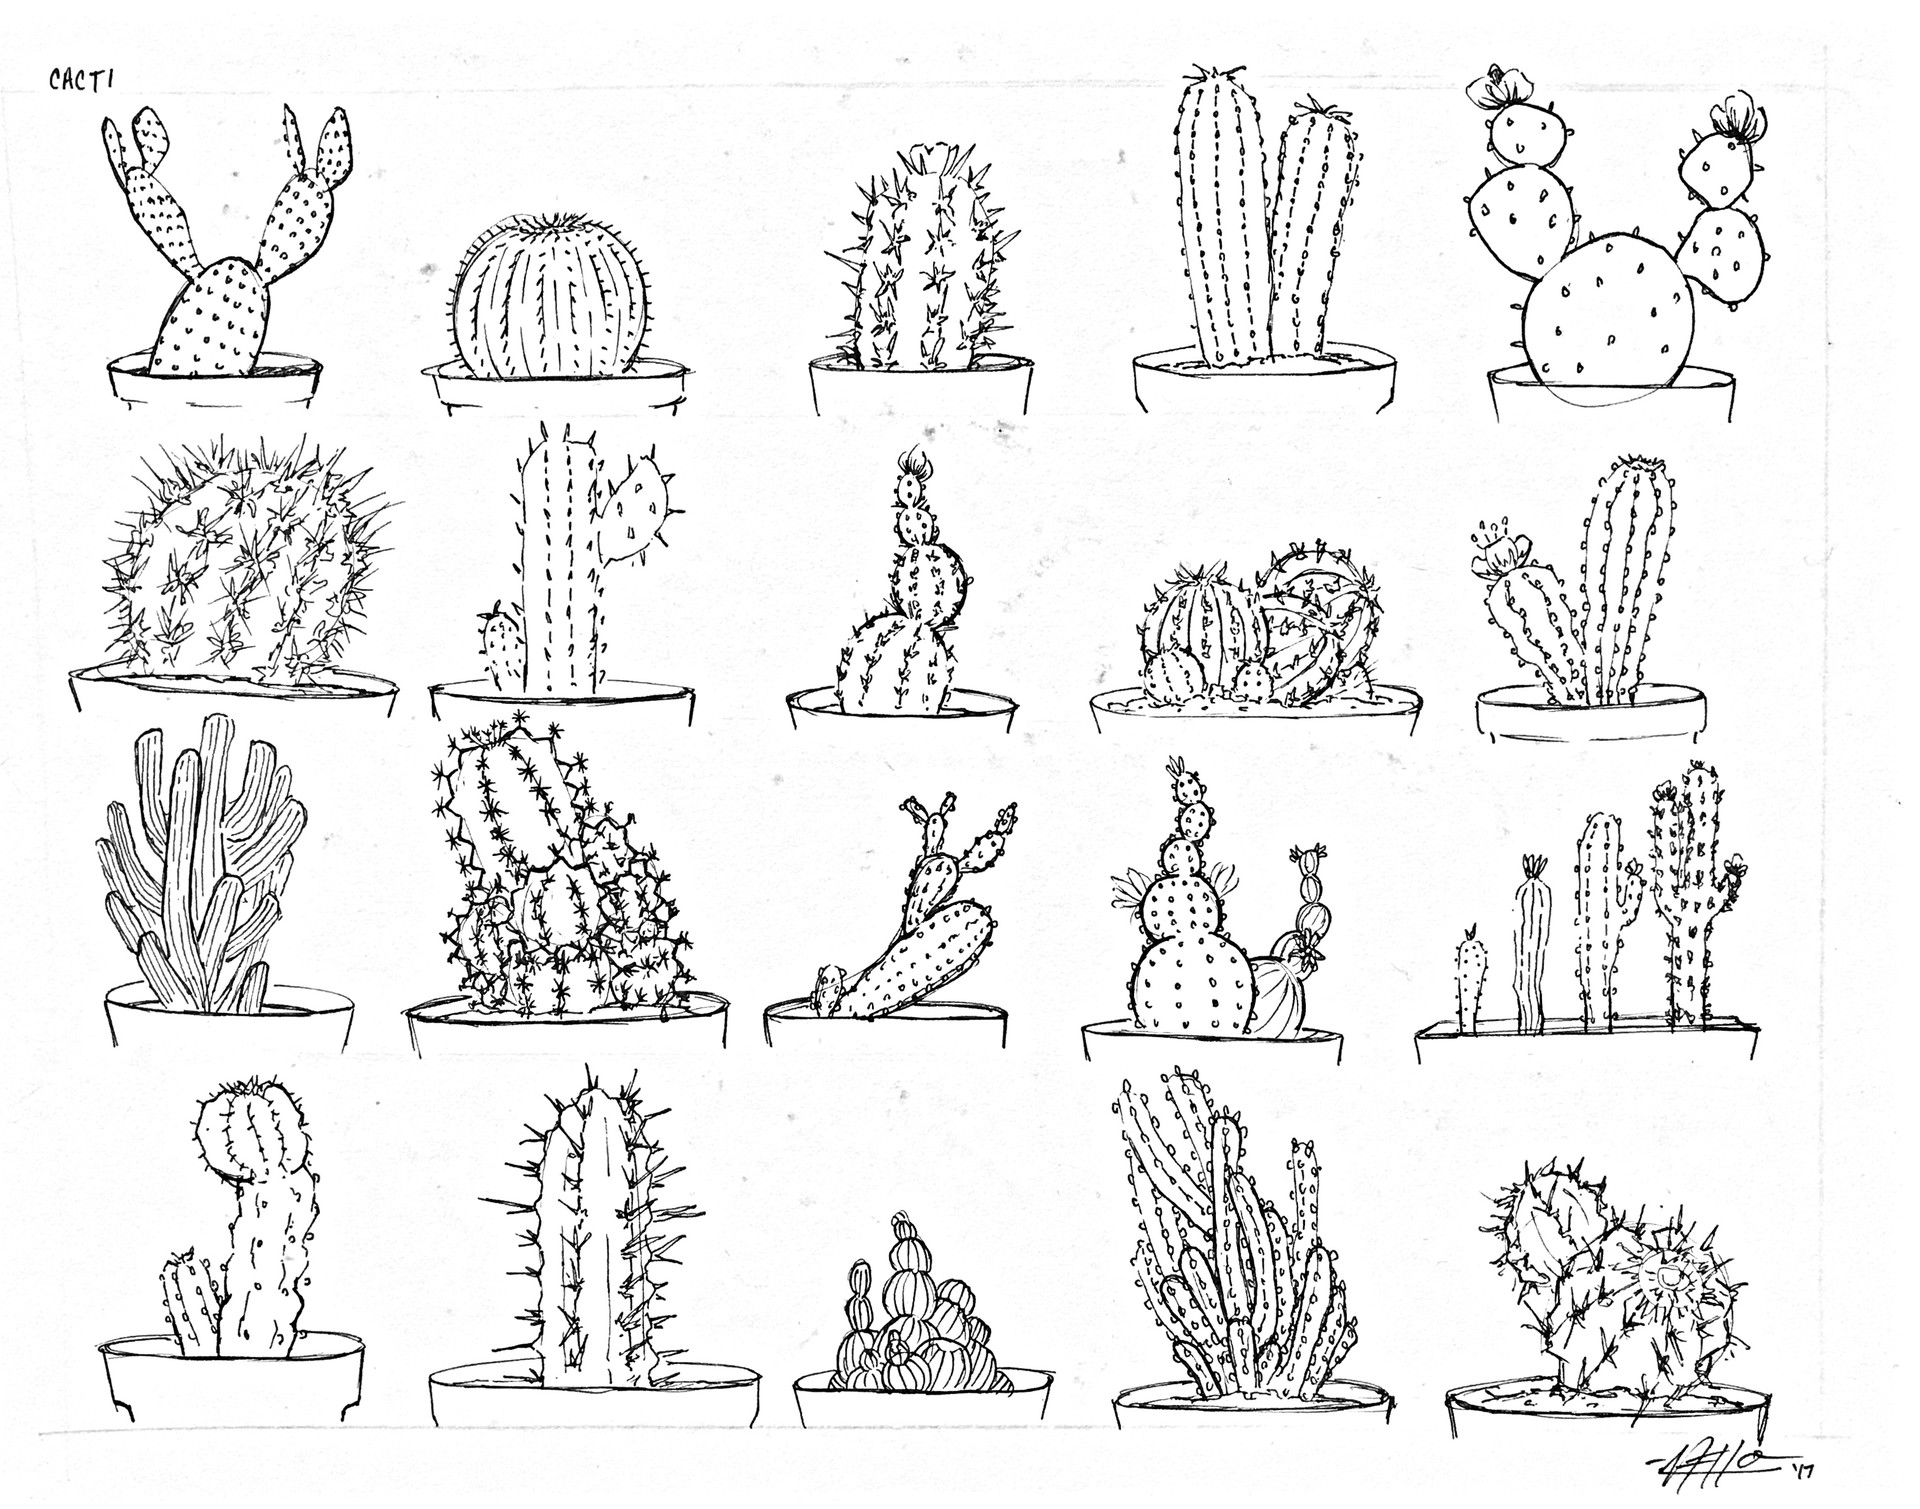 Michelle lo cacti sketch rotated